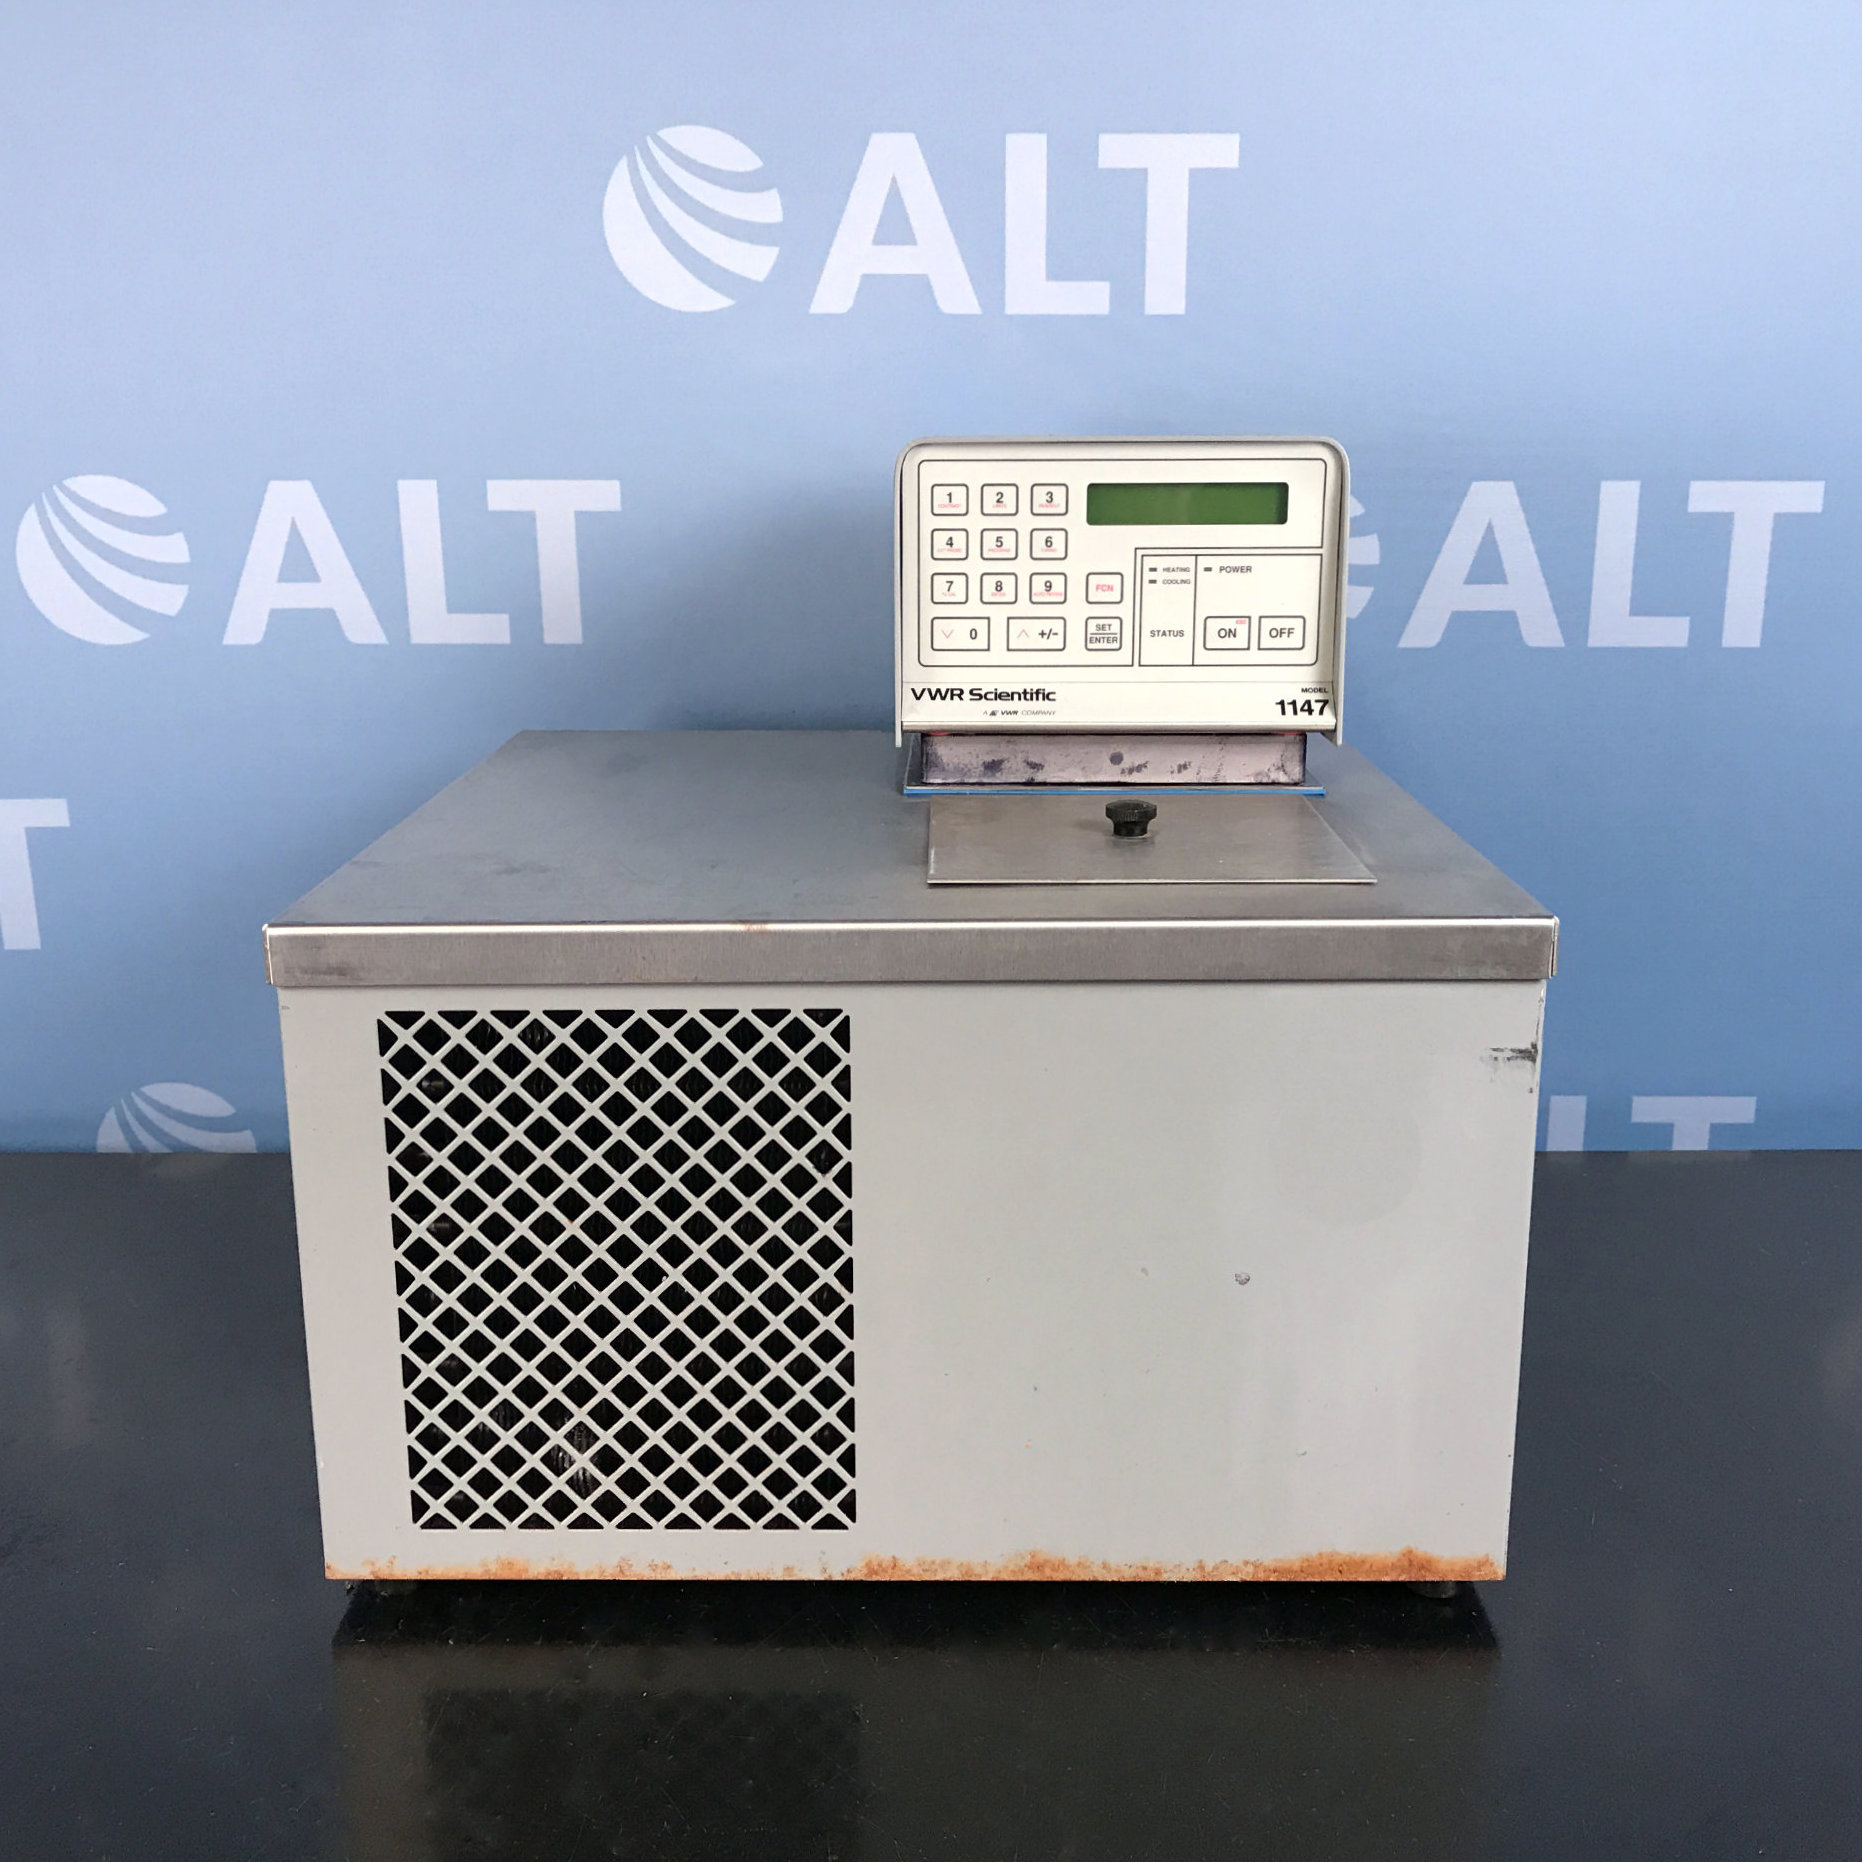 VWR Scientific 1147 Refrigerated Circulator Image